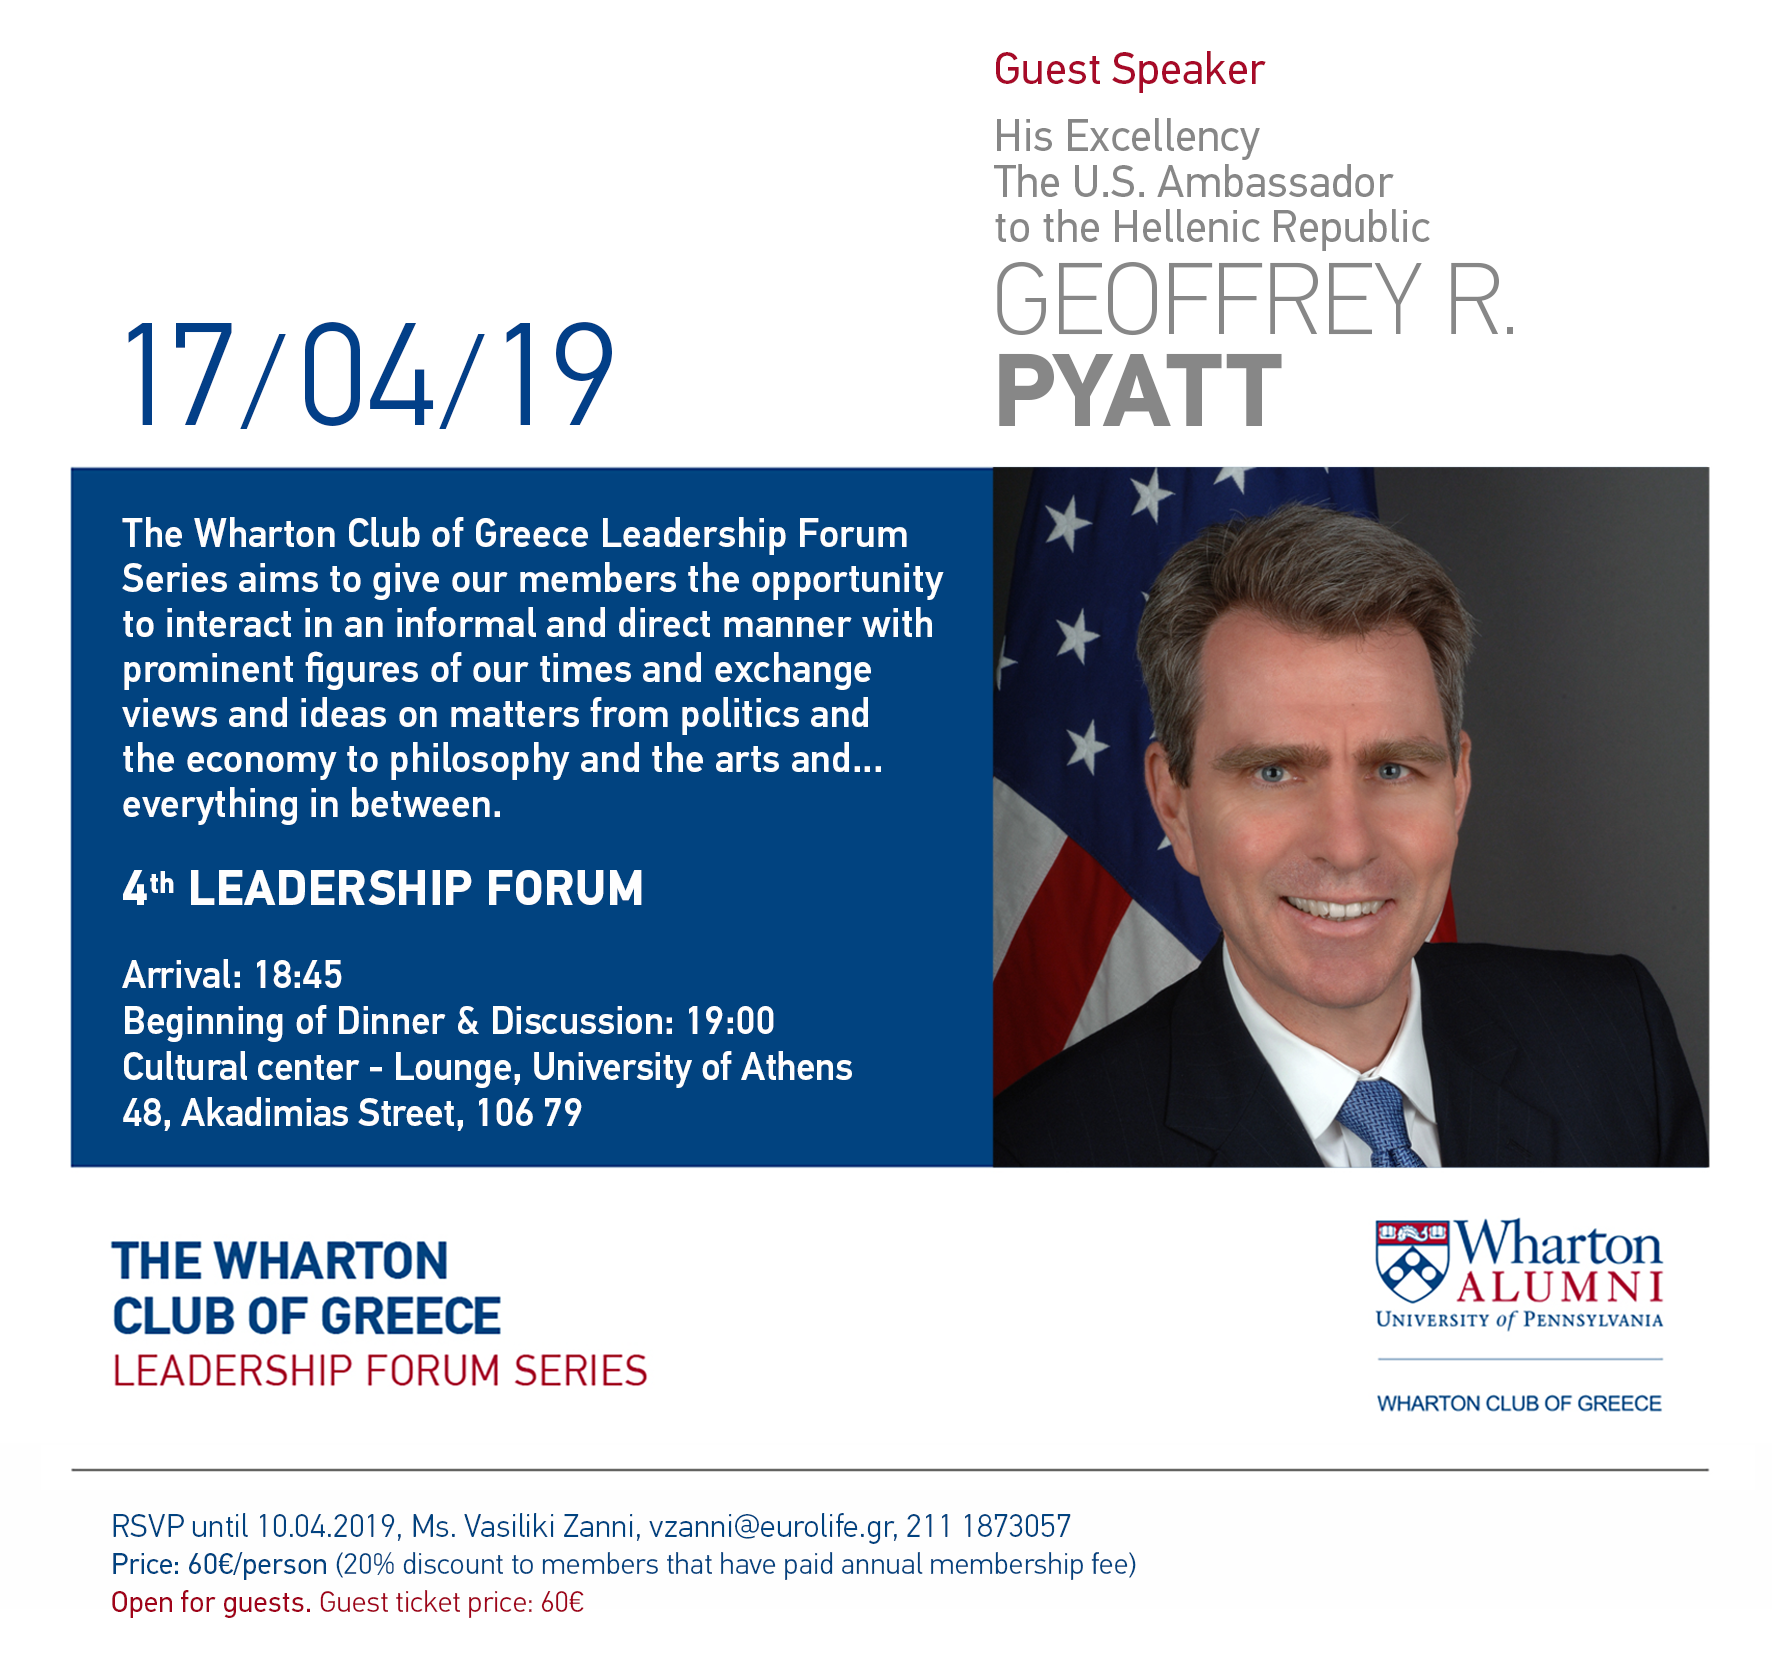 invitation_wharton_pyatt_final.png